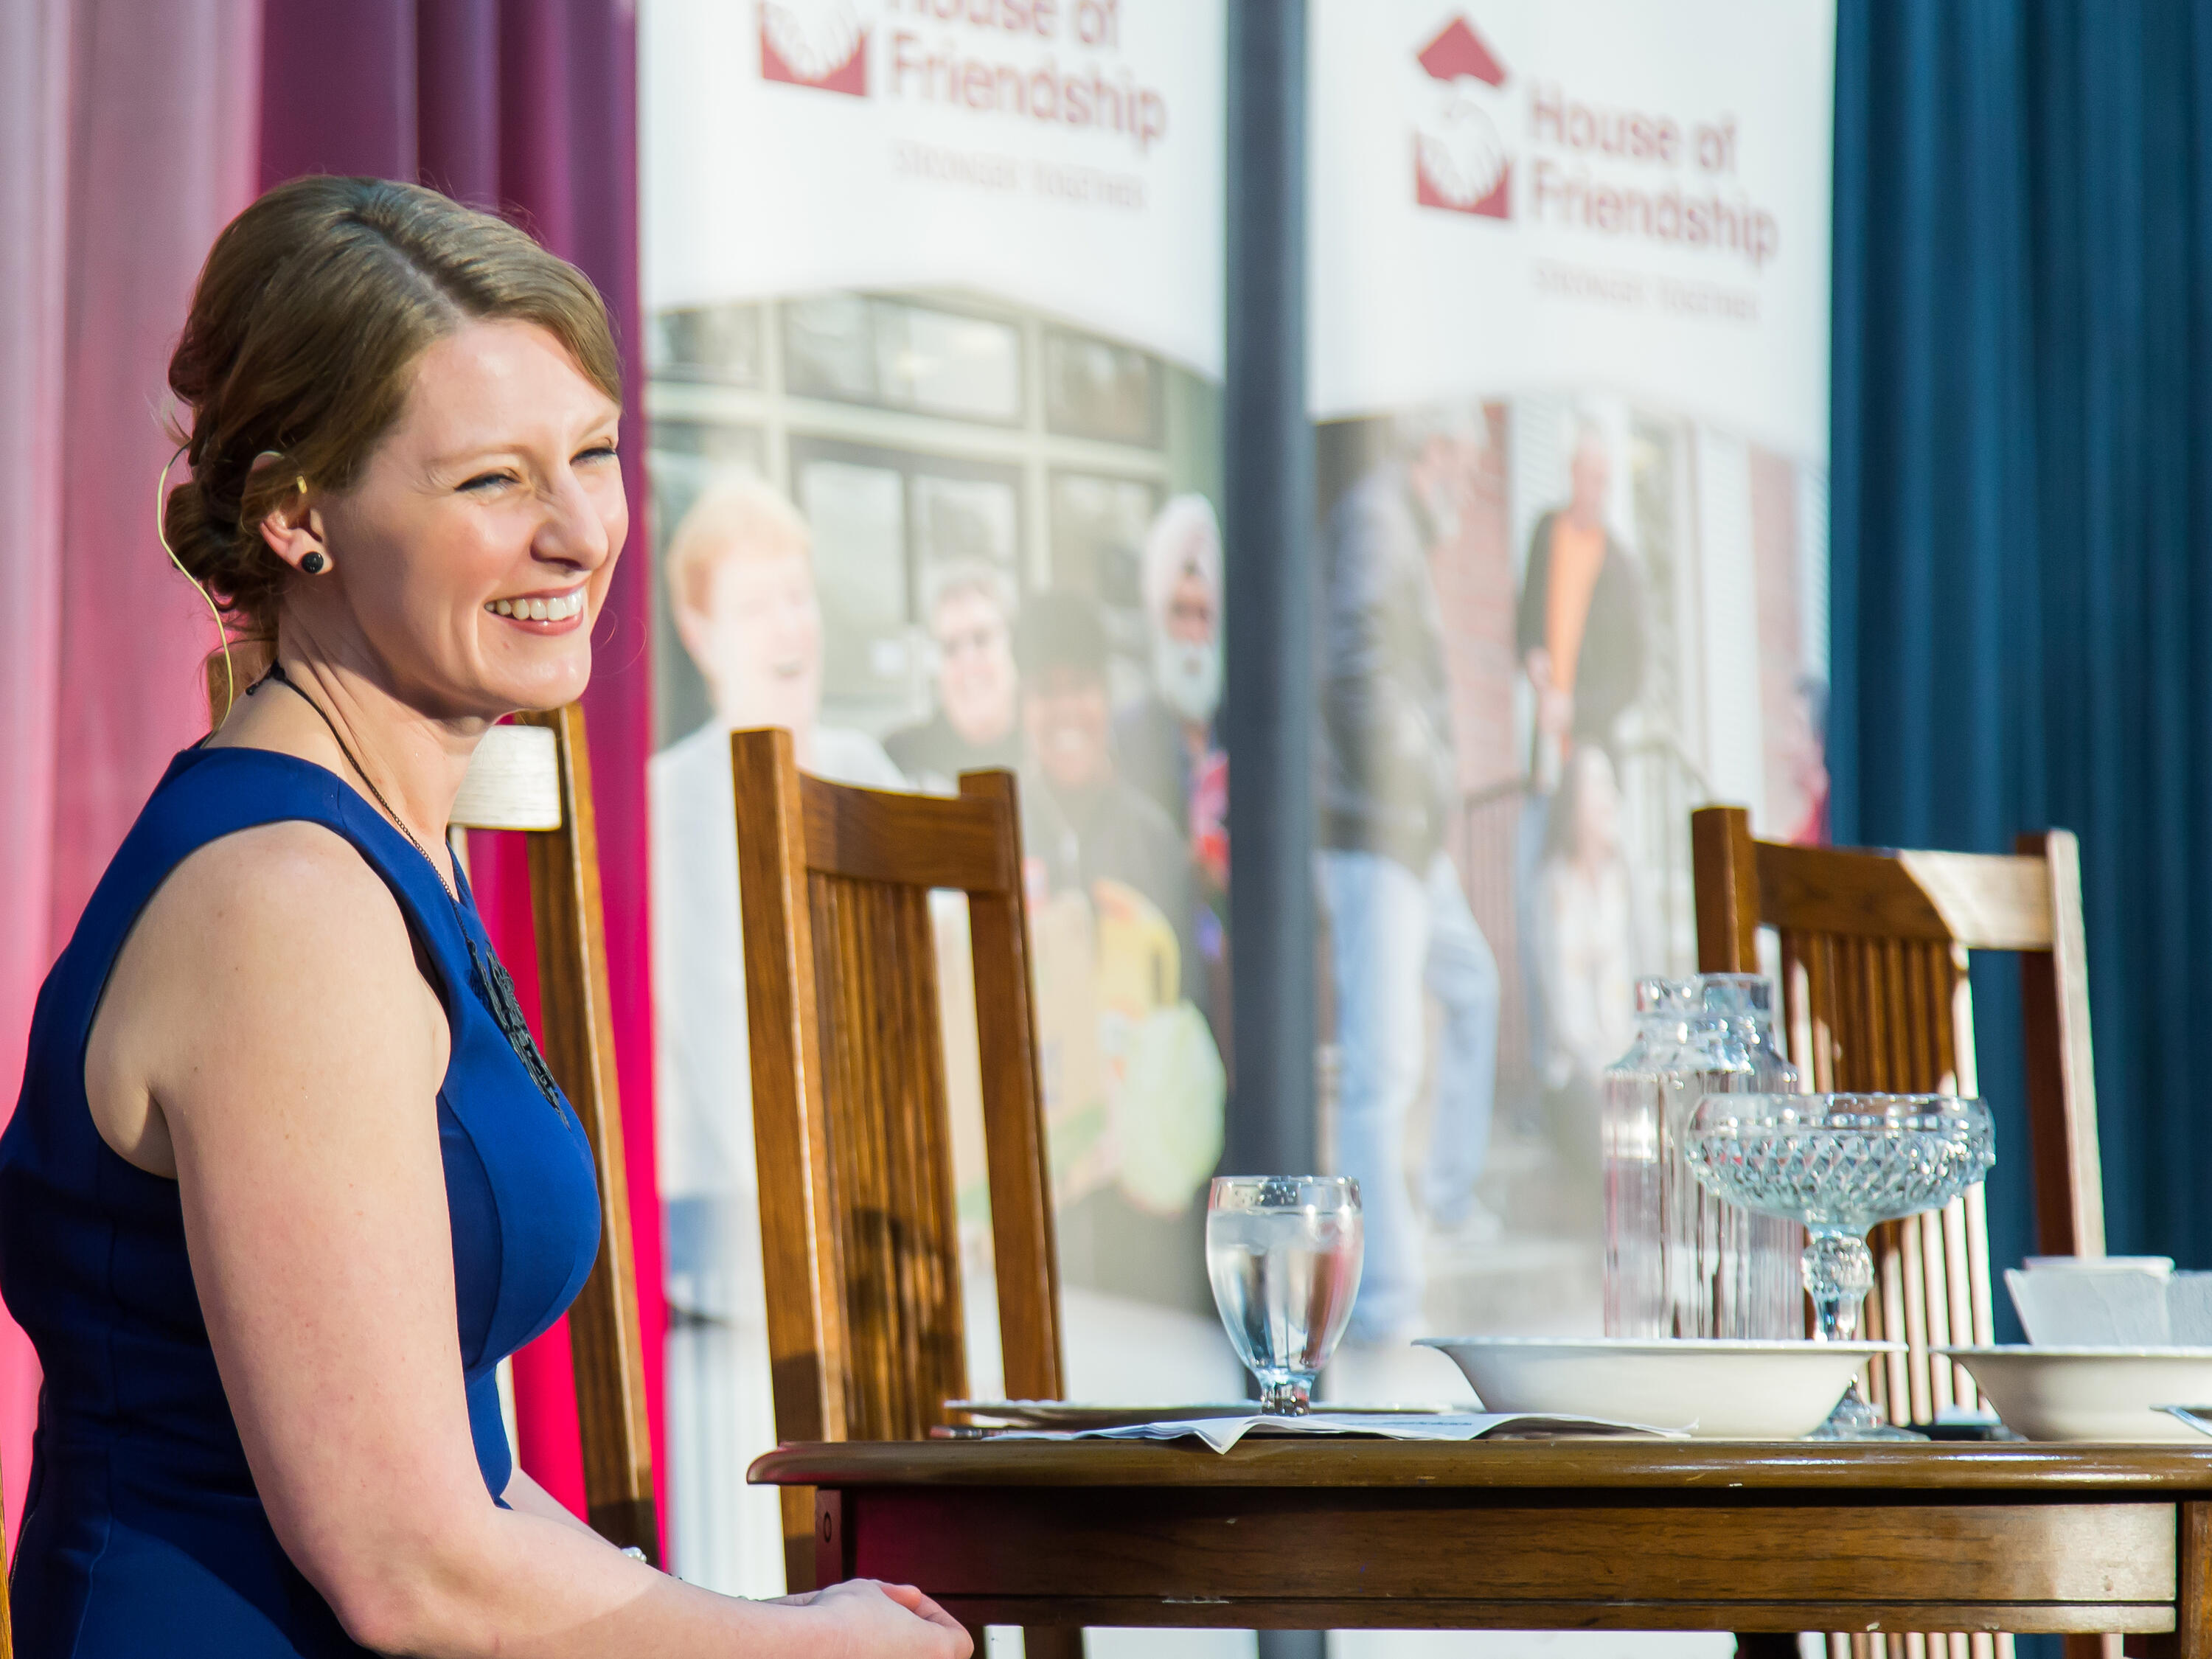 Jessica Bondy smiling while sitting next to a table at an event